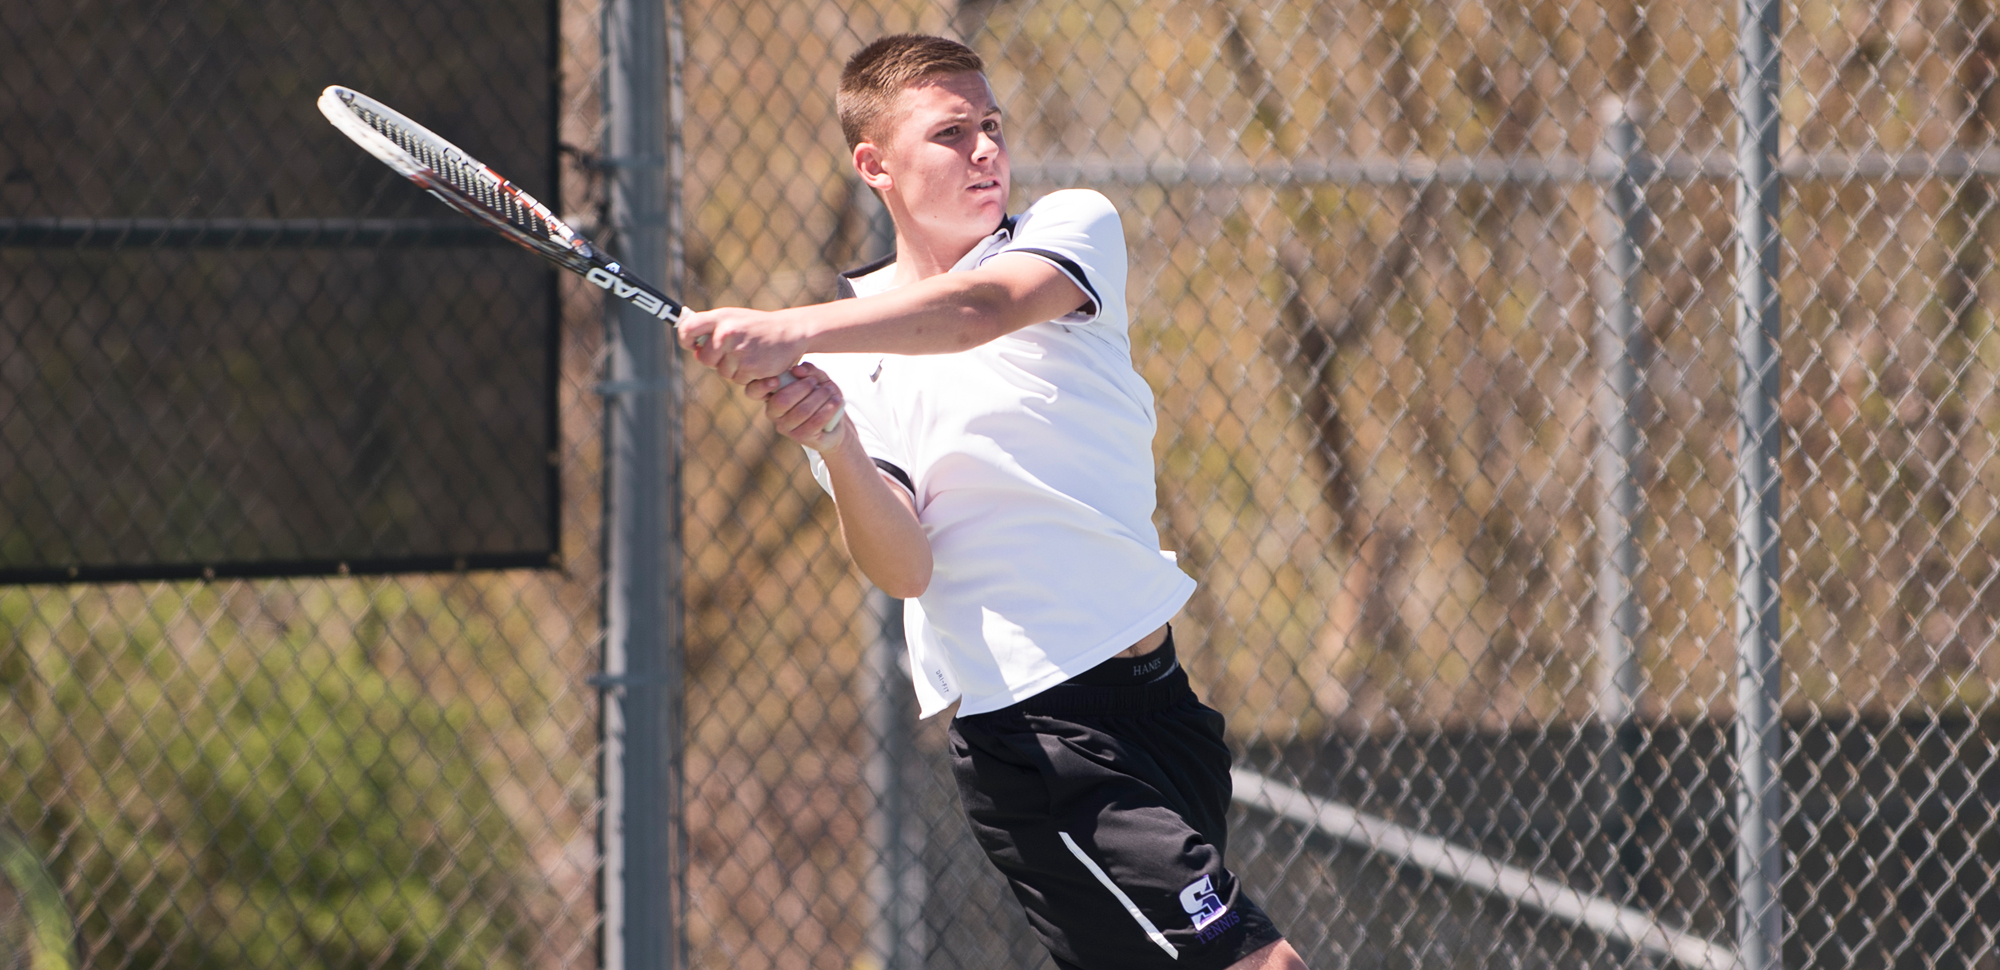 Junior Alexander Ochalski was named the Landmark Conference's Men's Tennis Athlete of the Week on Monday, marking the first time in his career that he has earned the award.